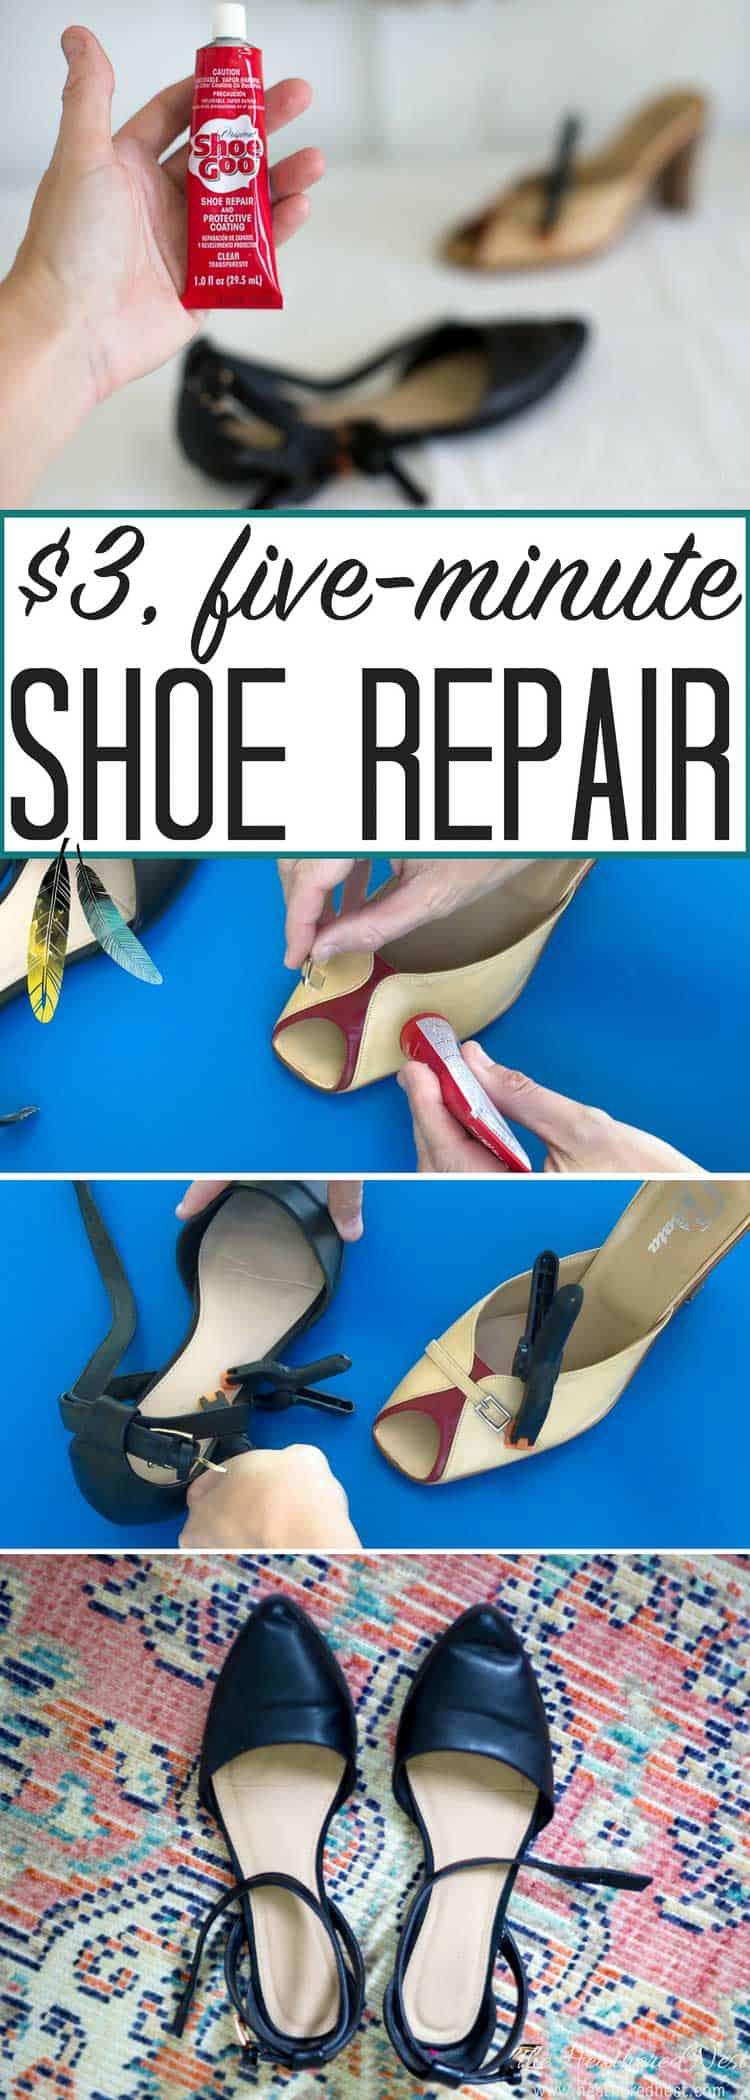 Don't throw out those favorite shoes! Repair them in minutes with this simple DIY project and a $3 tube of shoe glue! Will it do a good job? Here's a review! #shoe #DIY #shoeglue #shoerepair #shoes